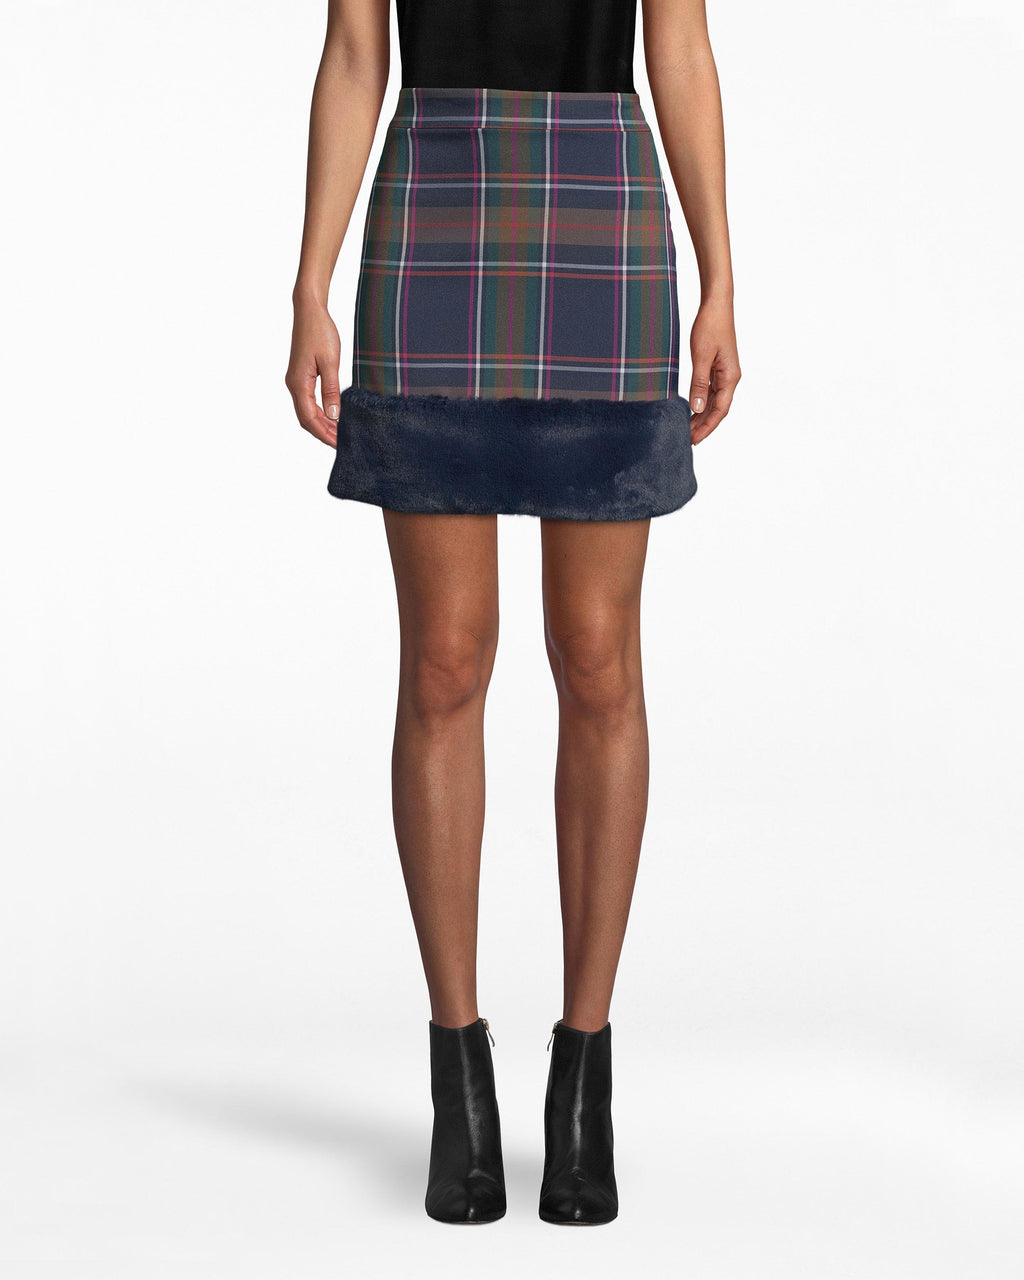 BH10493 - BLUEWAY PLAID MINI SKIRT - bottoms - skirts - See that hem? The faux-fur trim on this mini plaid skirt mixes rebellion into a classic look. It fits comfortably on the hips while still highlighting your figure. Pair back with a solid top. Side zipper for closure.